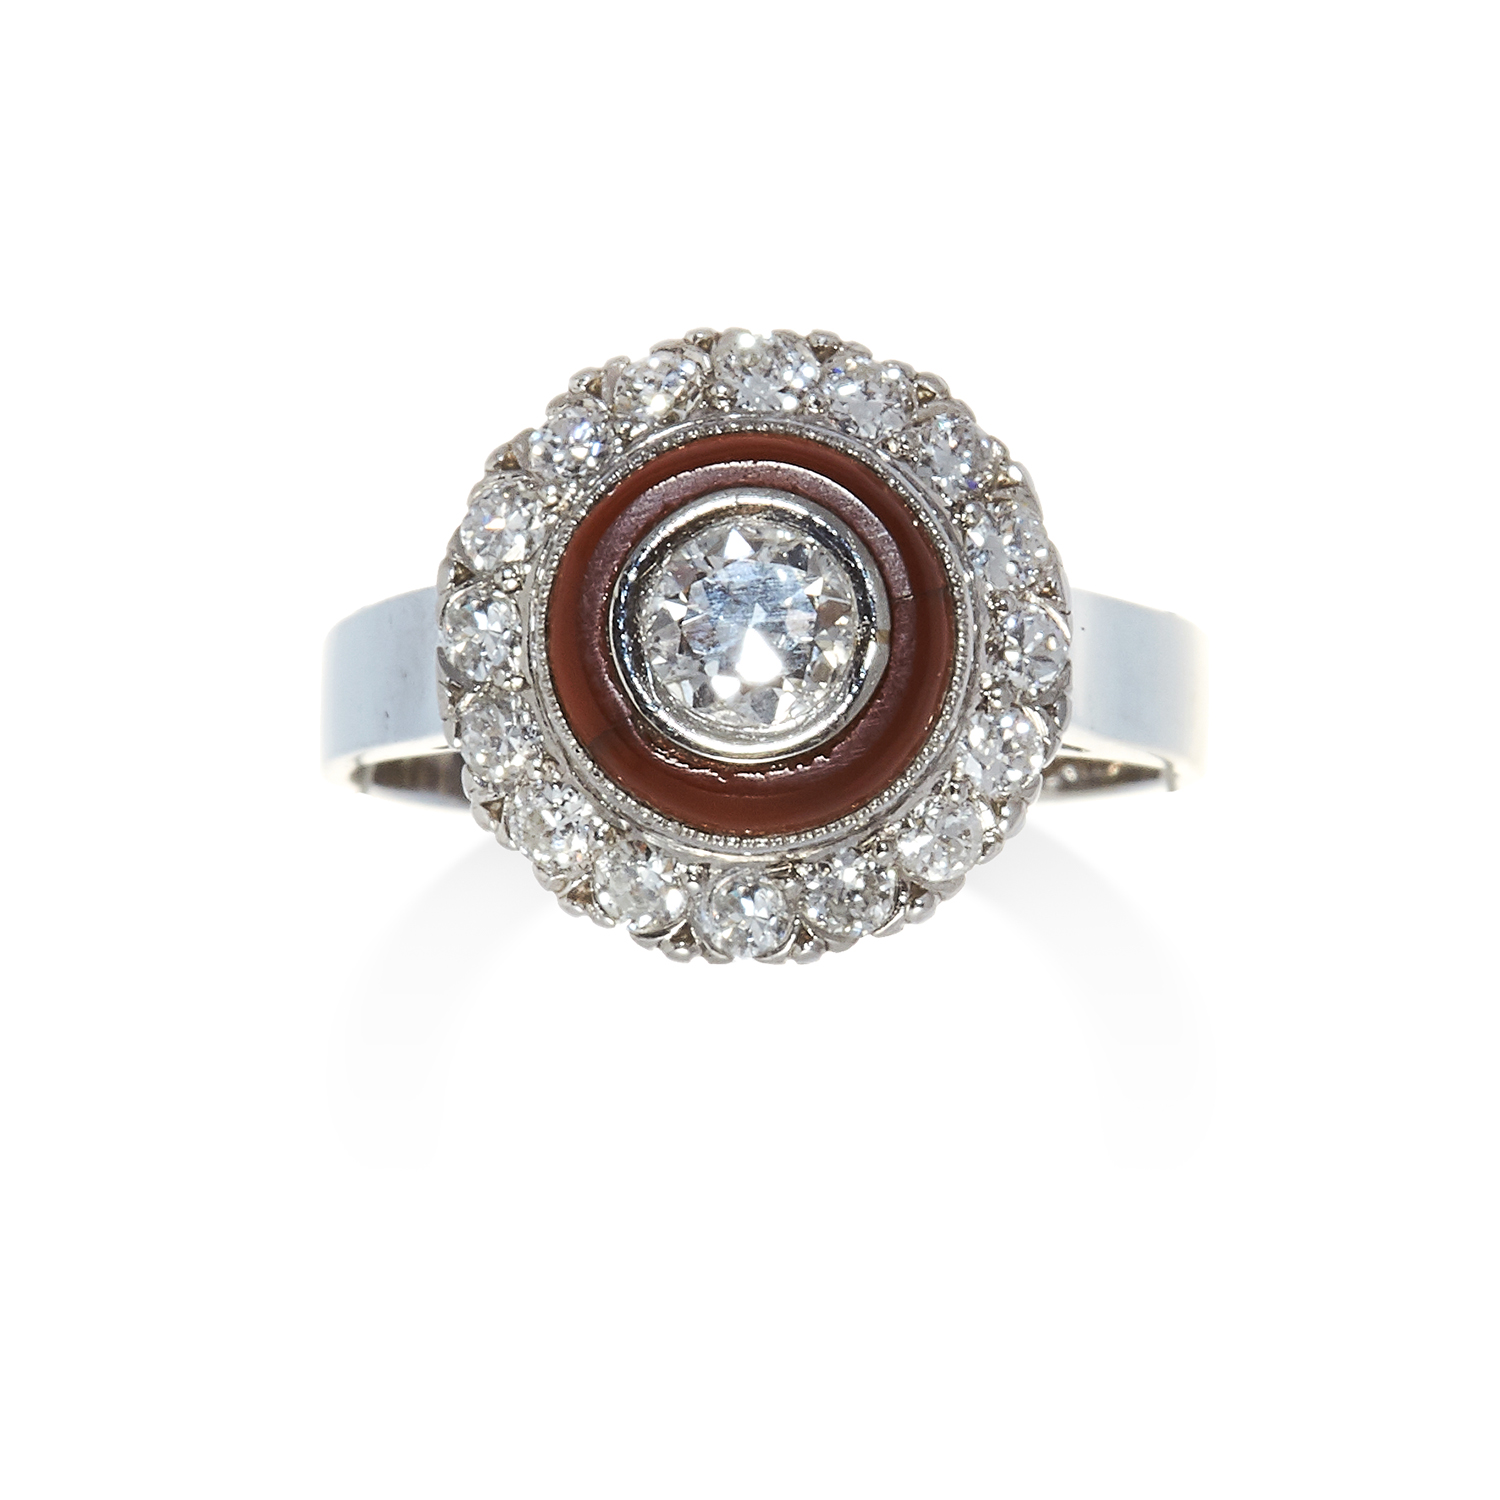 Los 37 - A DIAMOND AND HARDSTONE RING in white gold, set with a central round cut diamond to a hardstone